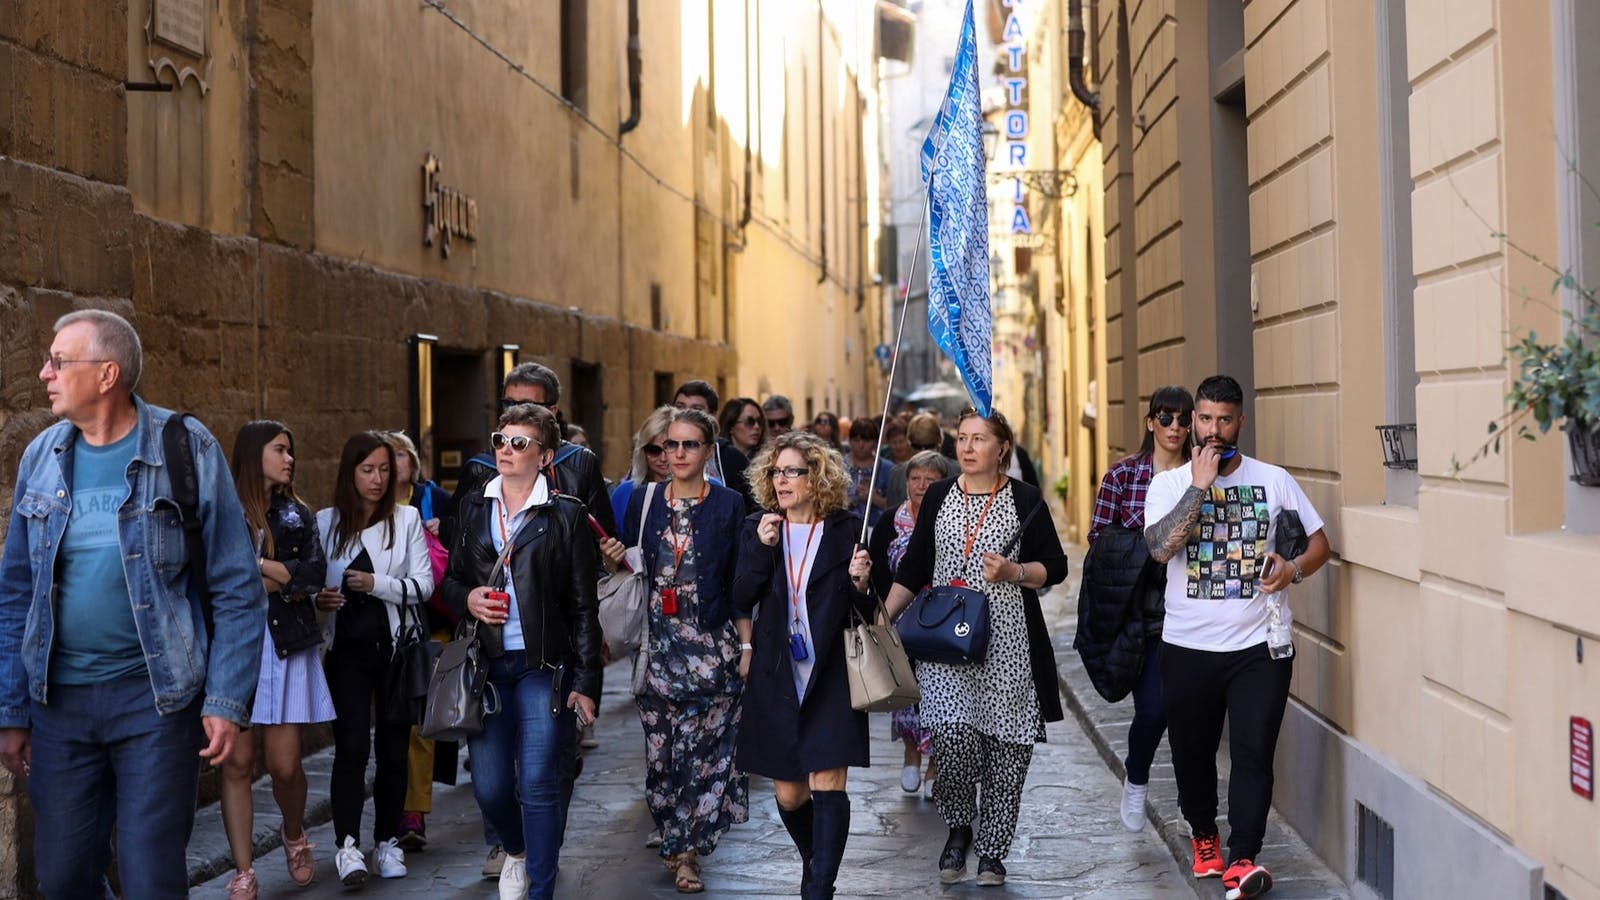 Tourists followed a tour guide through a backstreet in Florence, Italy, in 2017. Photo: Bloomberg